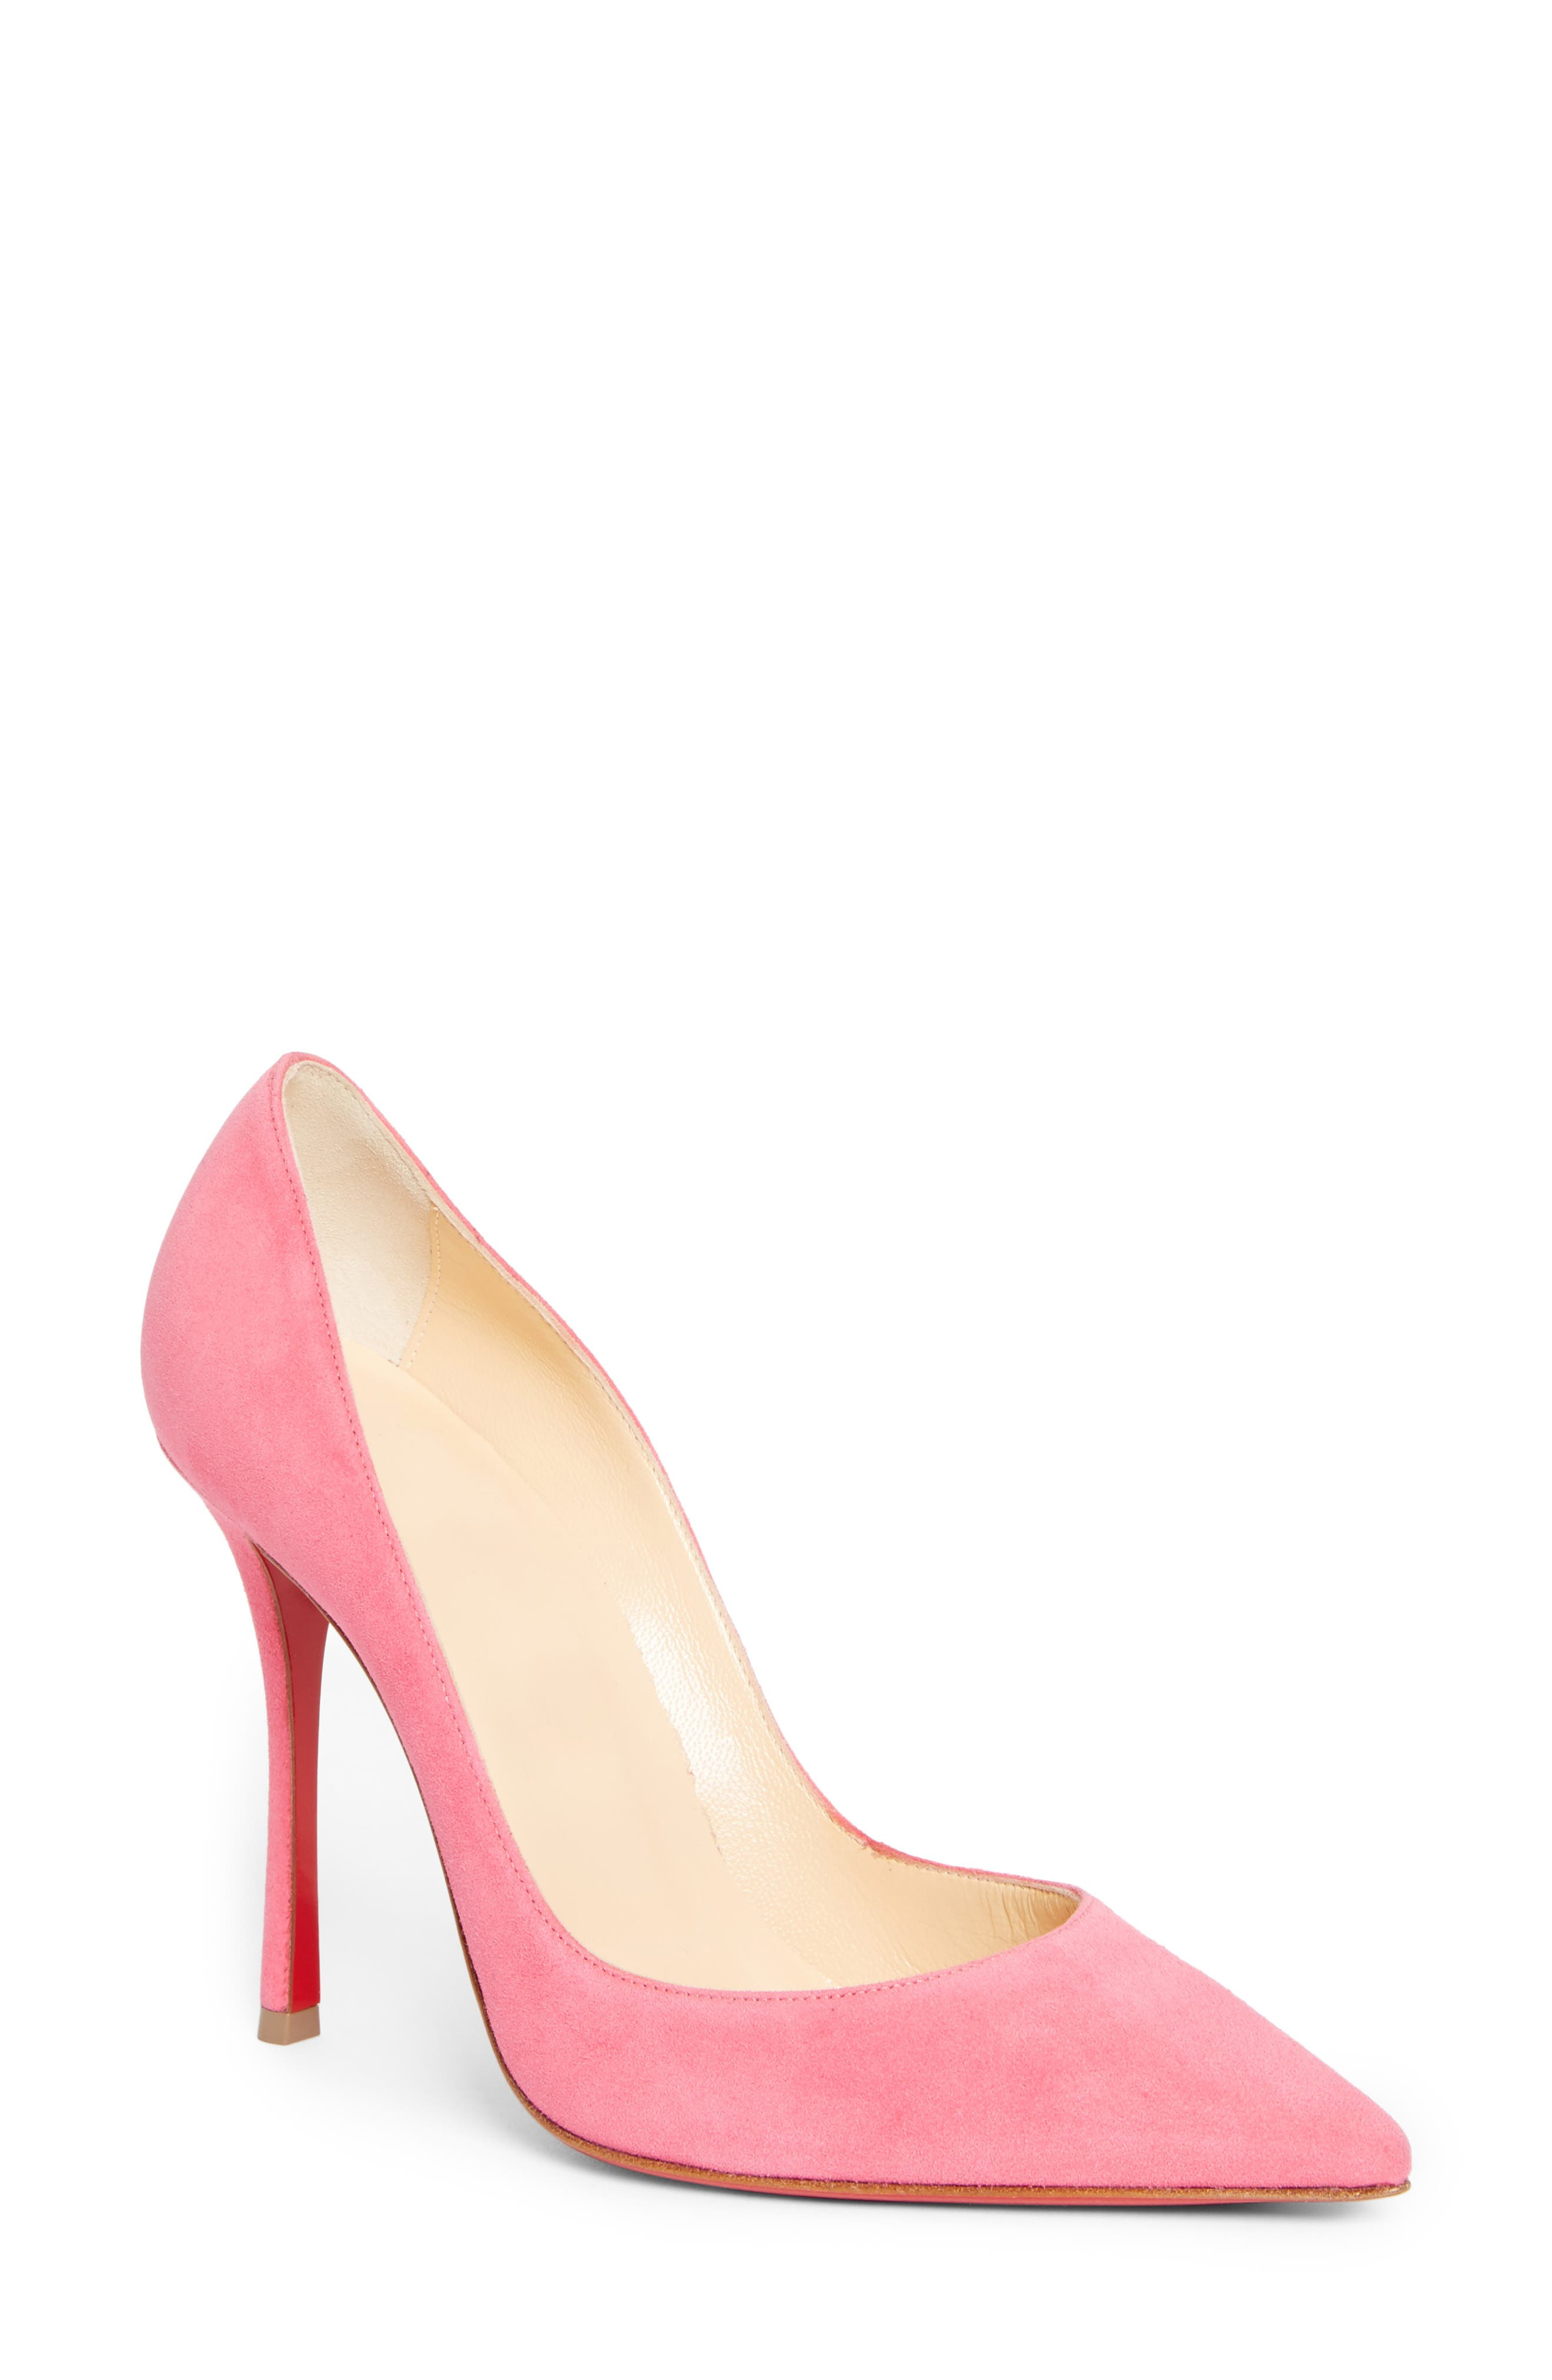 Main Image - Christian Louboutin So Kate Pointy Toe Pump